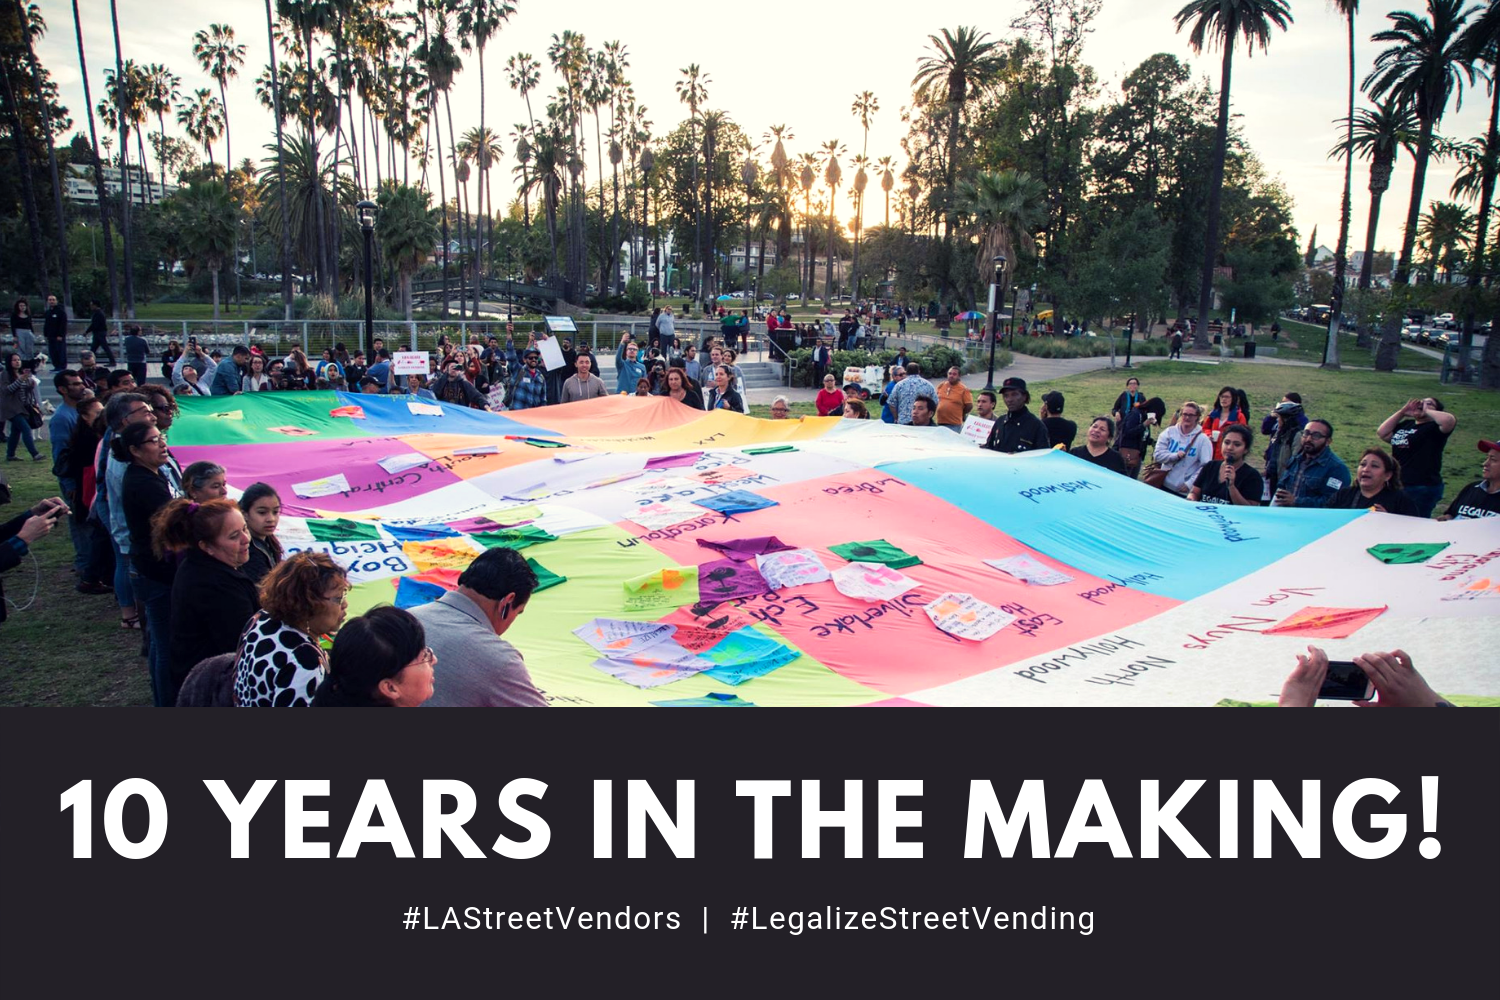 Letter From Our President: Reflections on 10 Years of the LA Street Vending Campaign